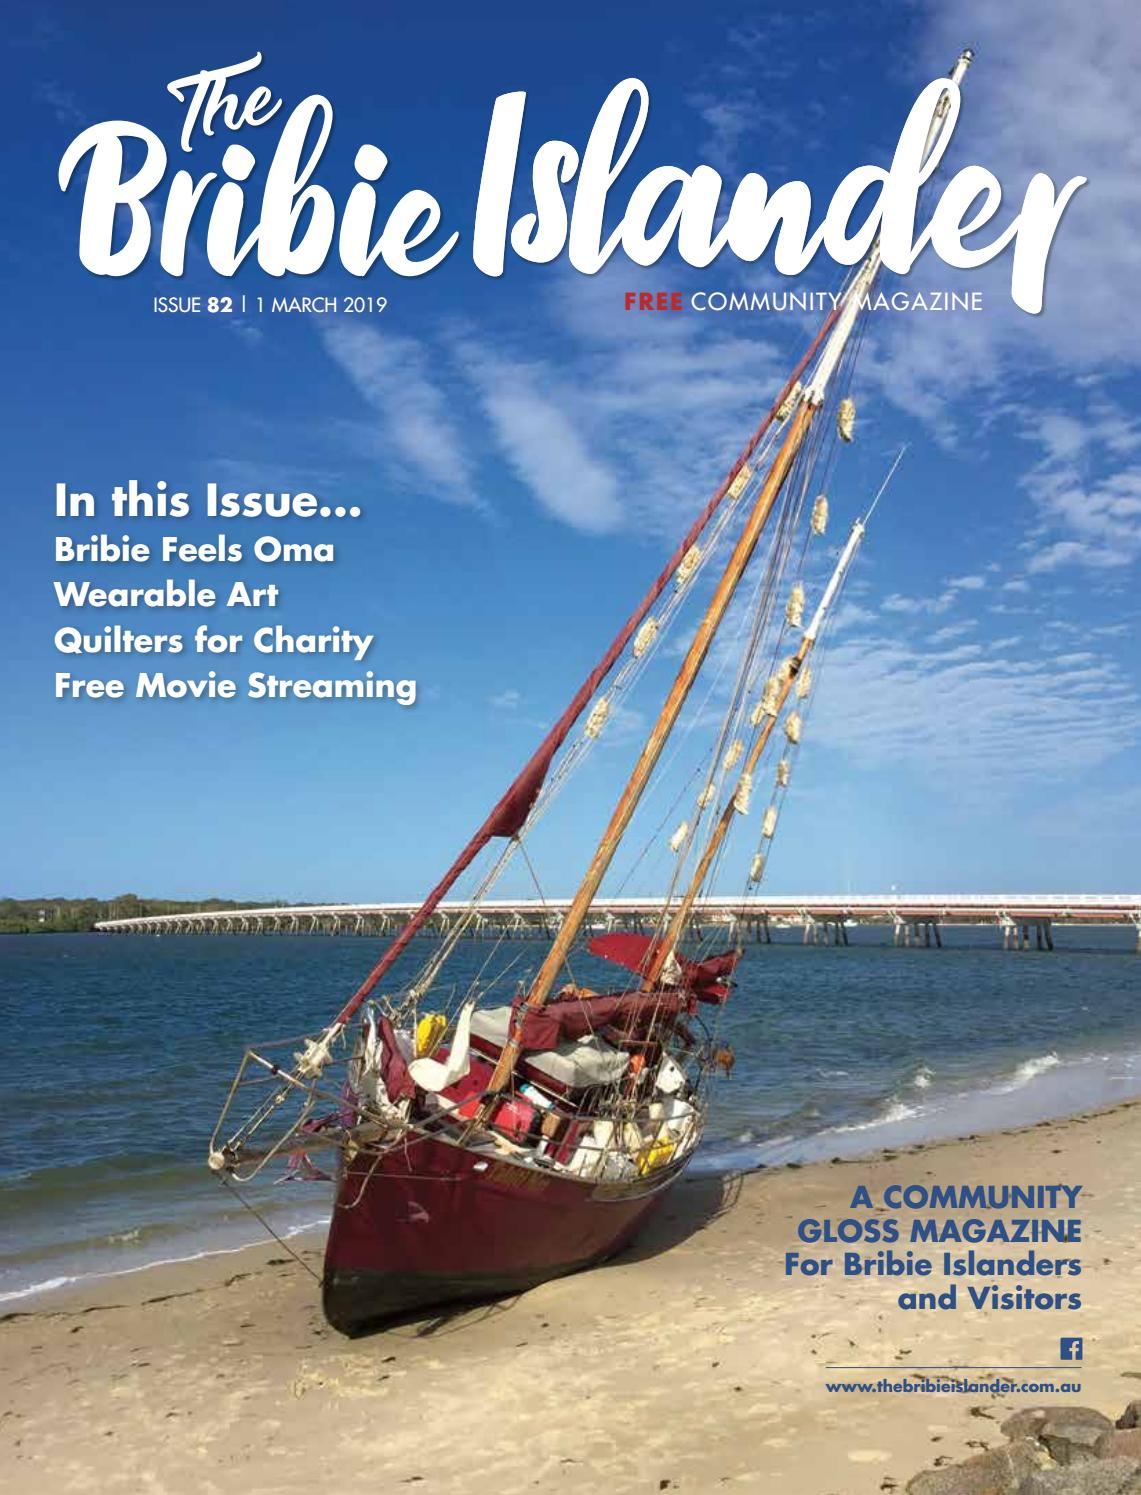 Gloss Magazine Bribie Islander 5th Edition March 01 2019